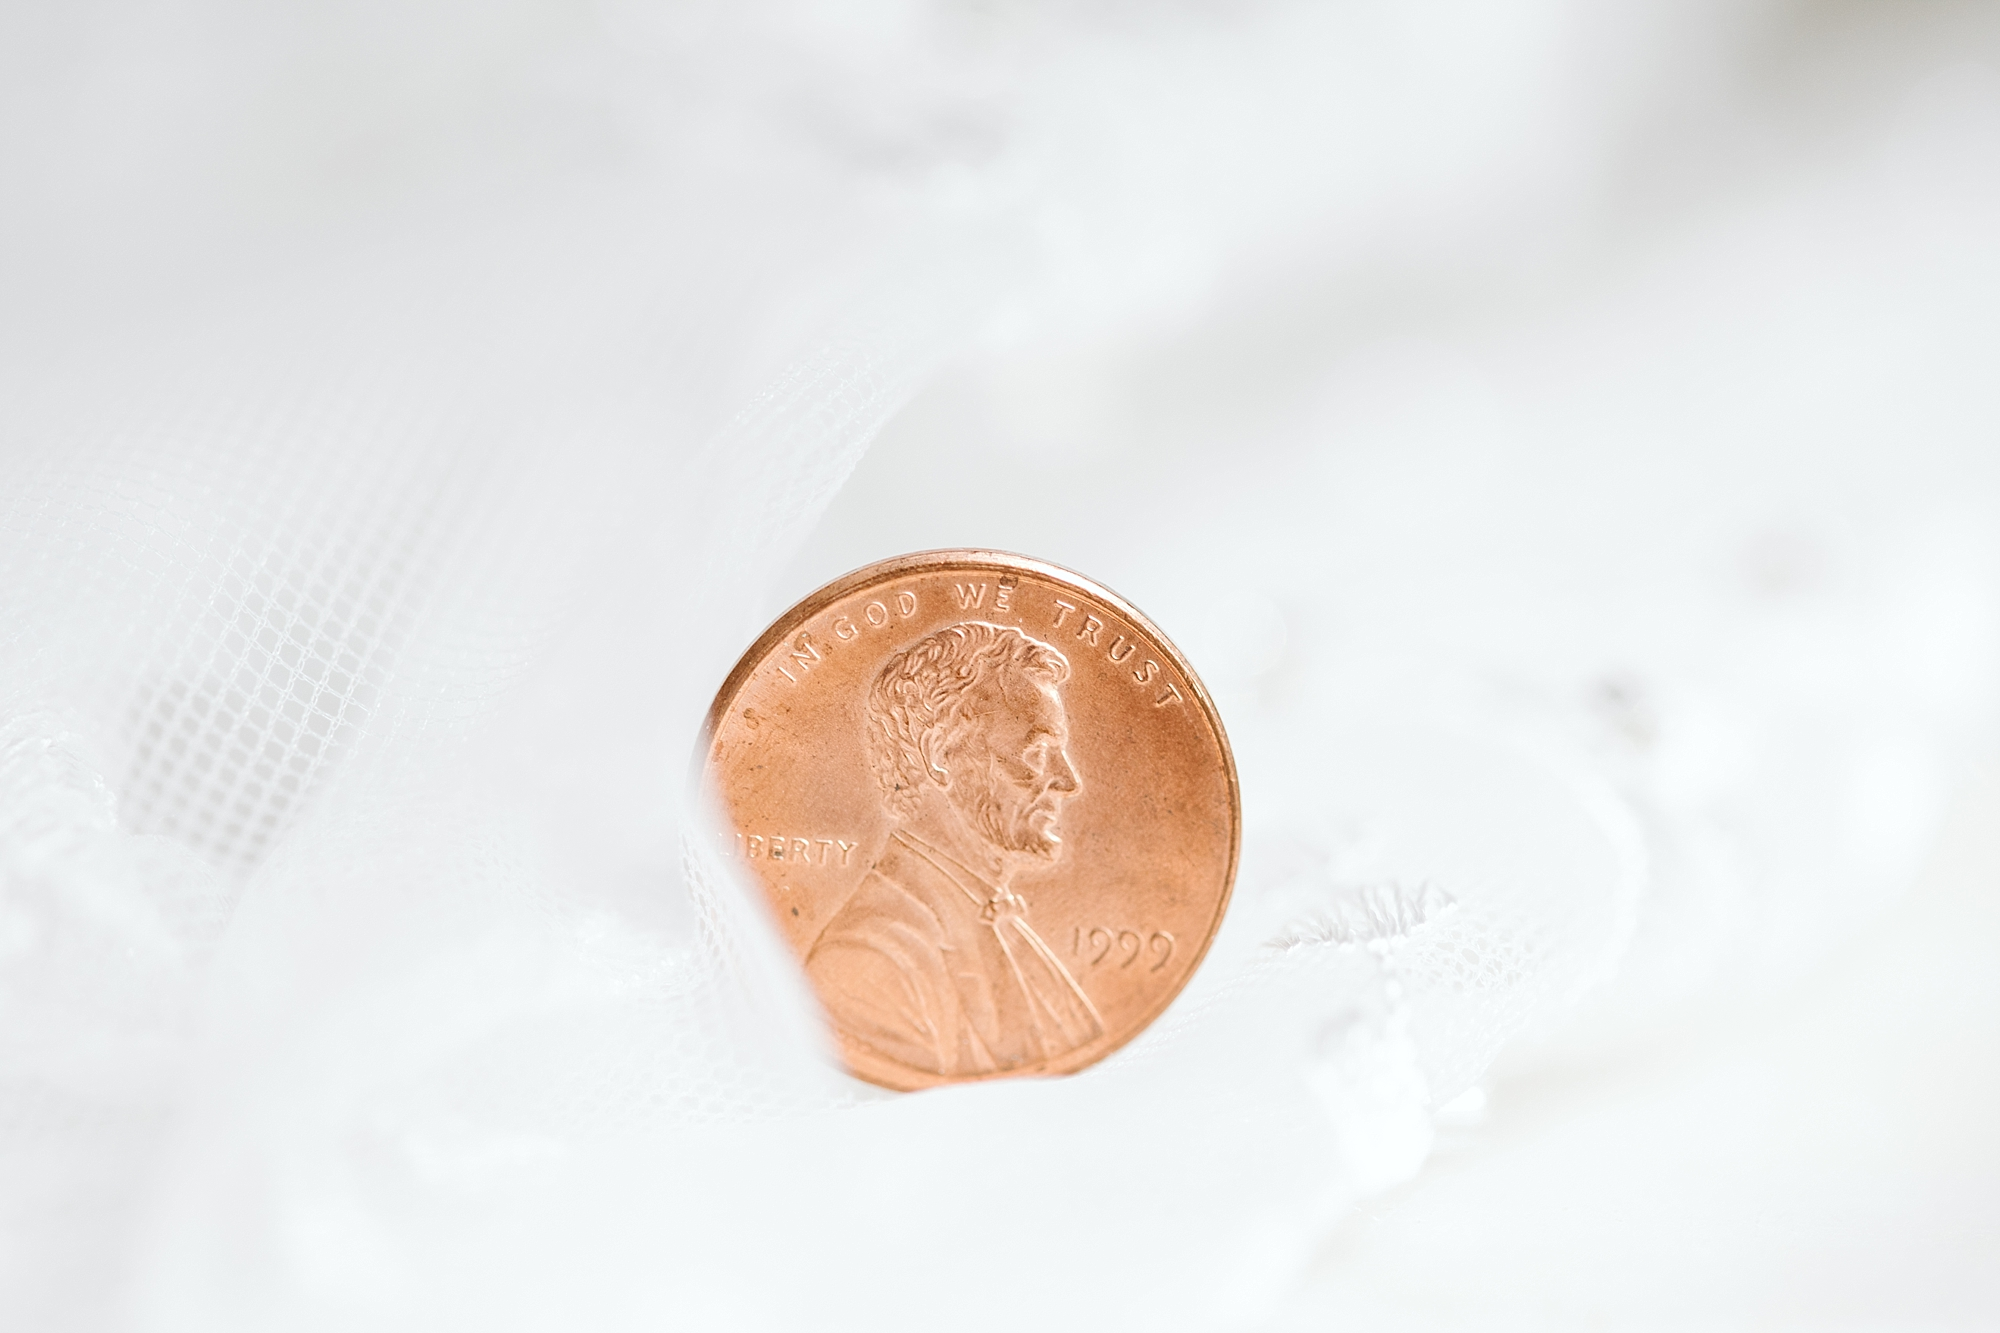 A penny for luck